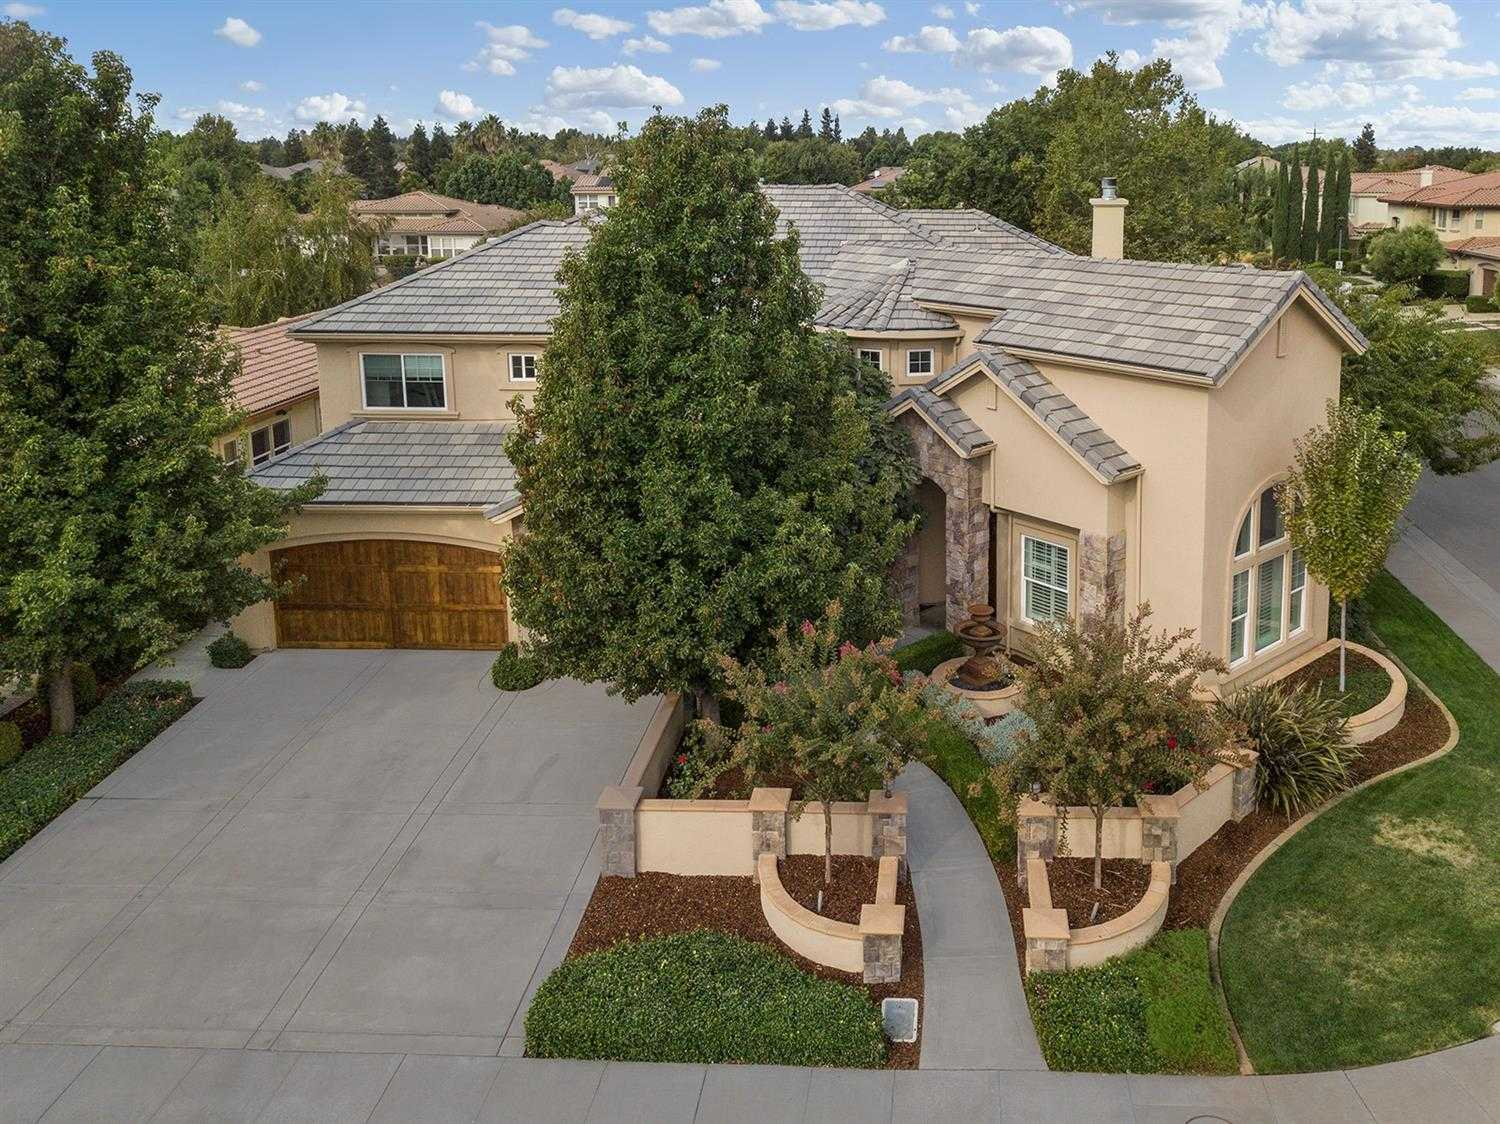 $1,695,000 - 5Br/5Ba -  for Sale in Davis